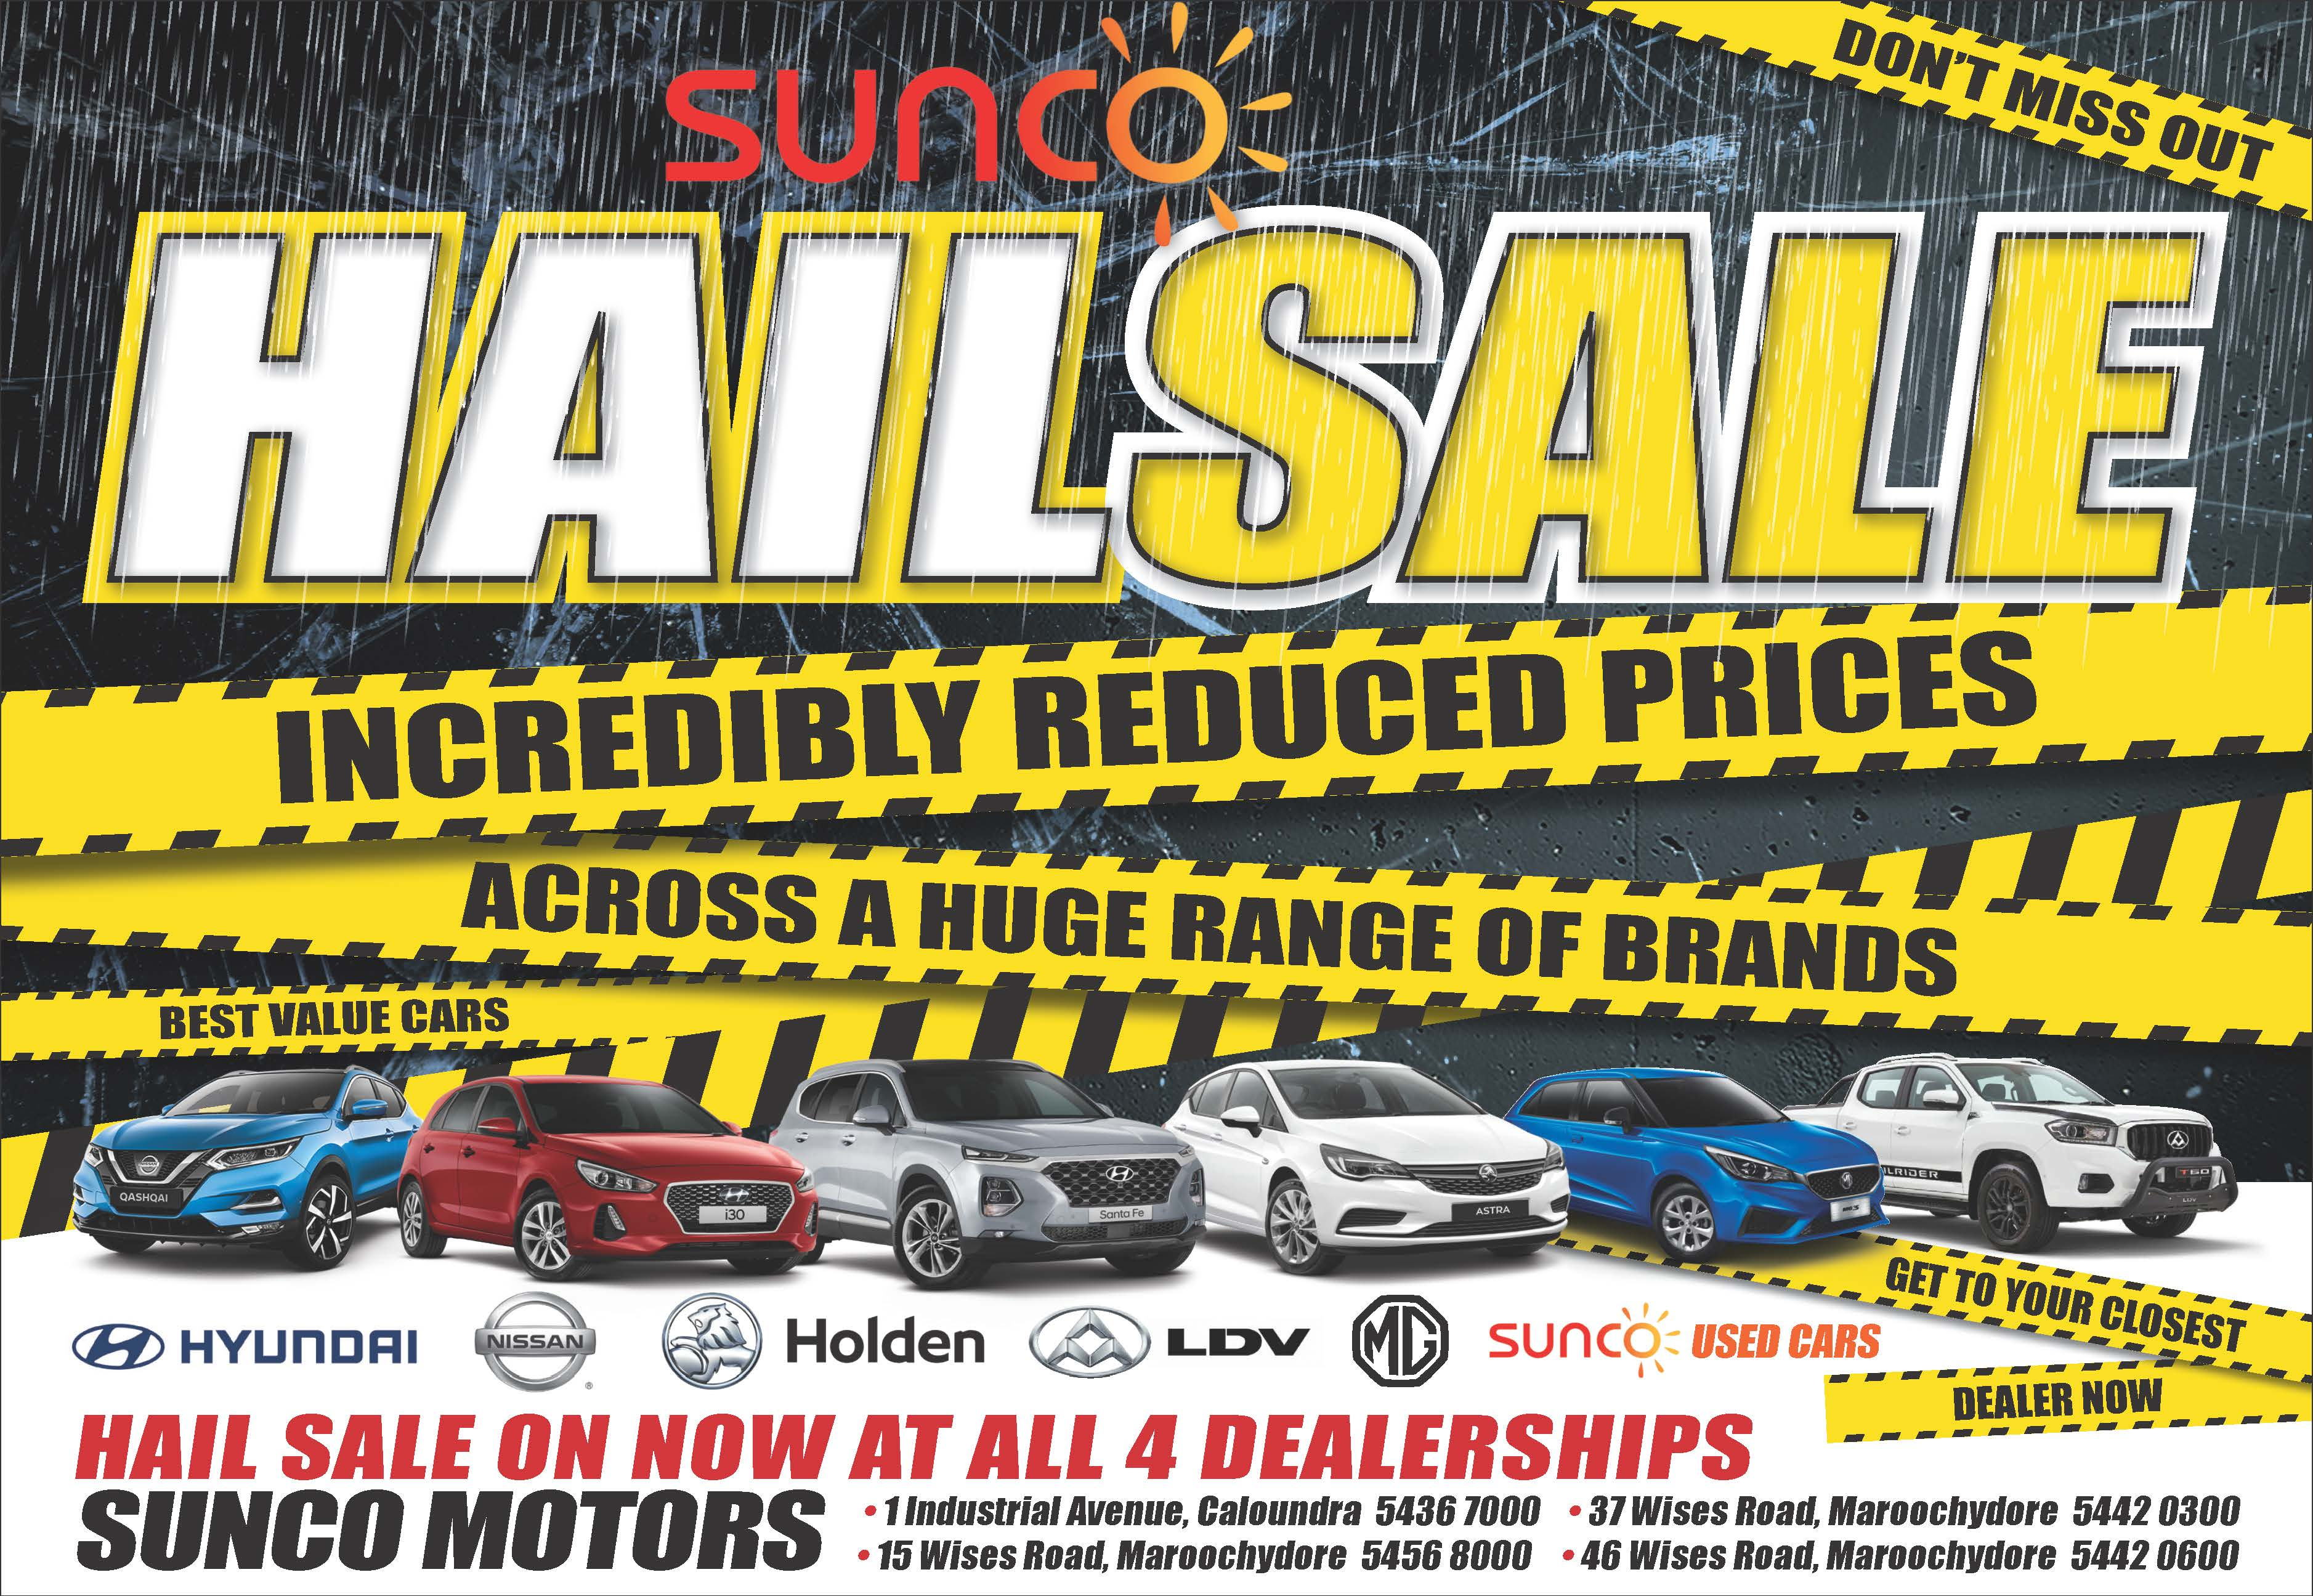 Sunco Hail Sale